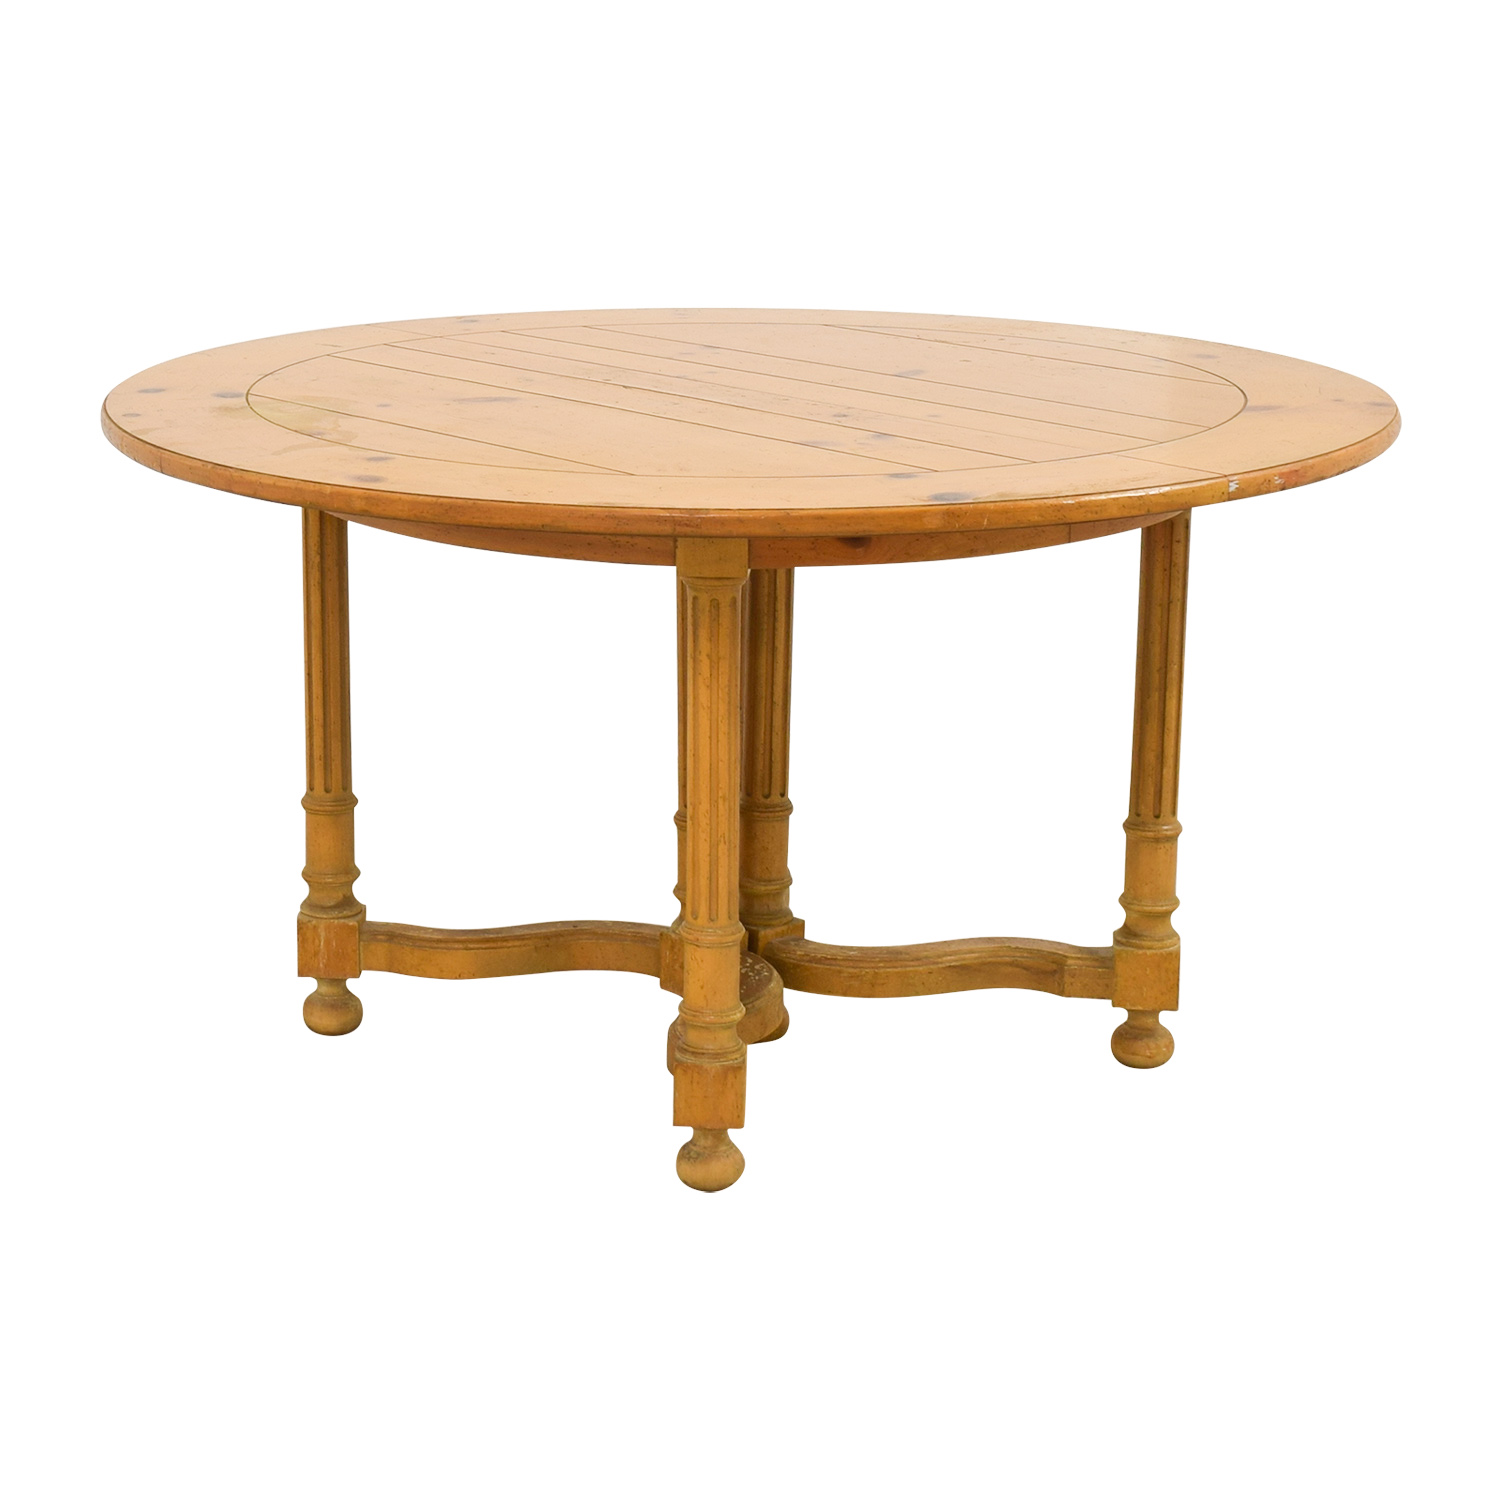 Milling Road Milling Road Natural Round Table with Leaf for sale